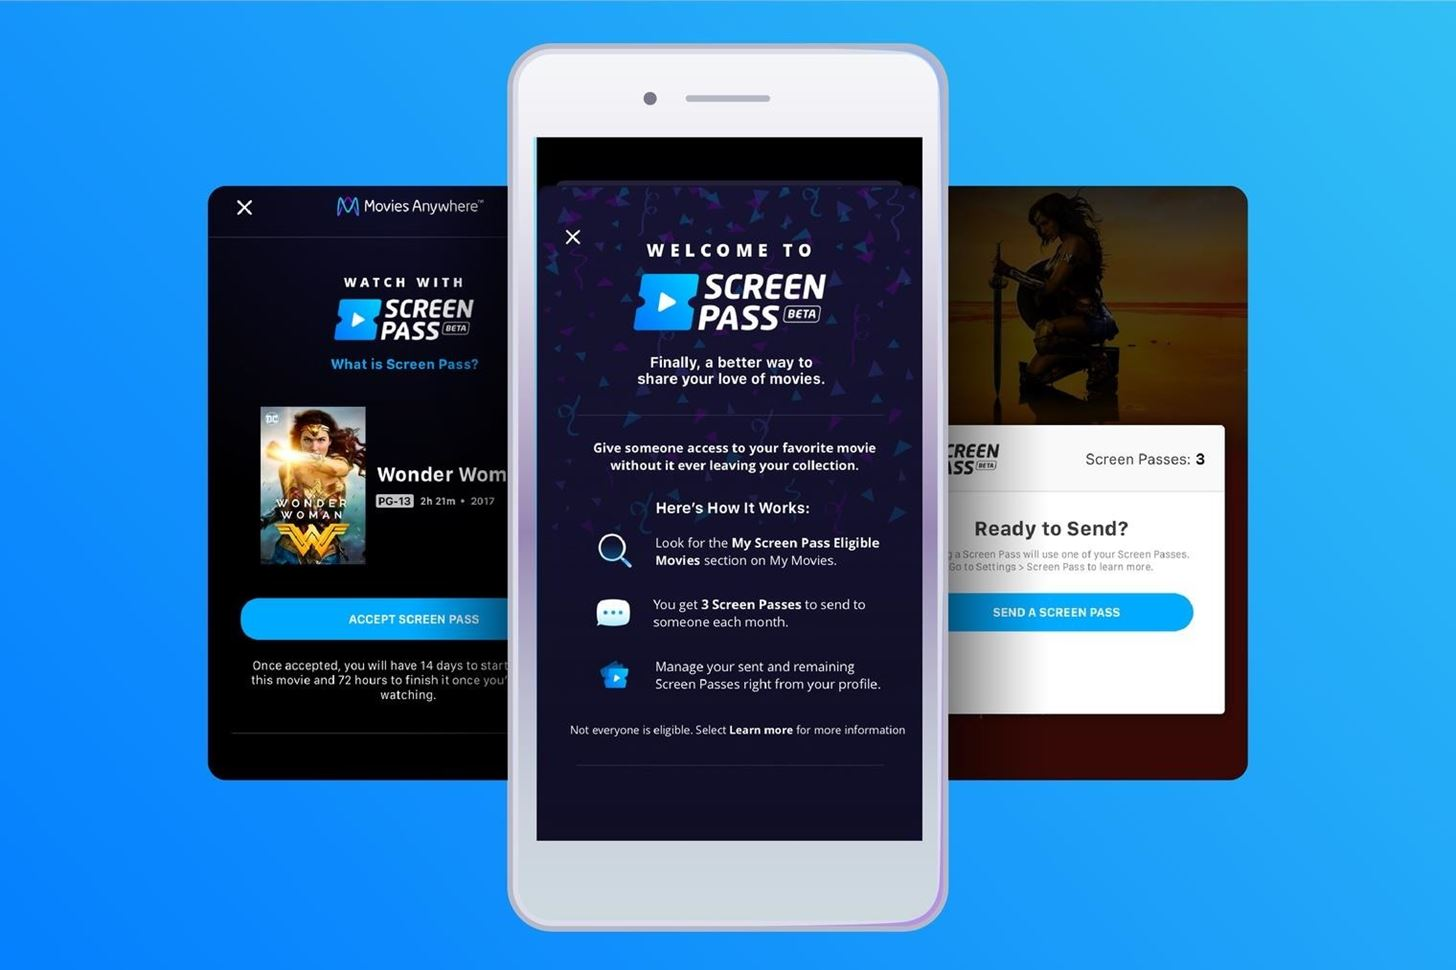 Lend your digital films to friends and family for free.